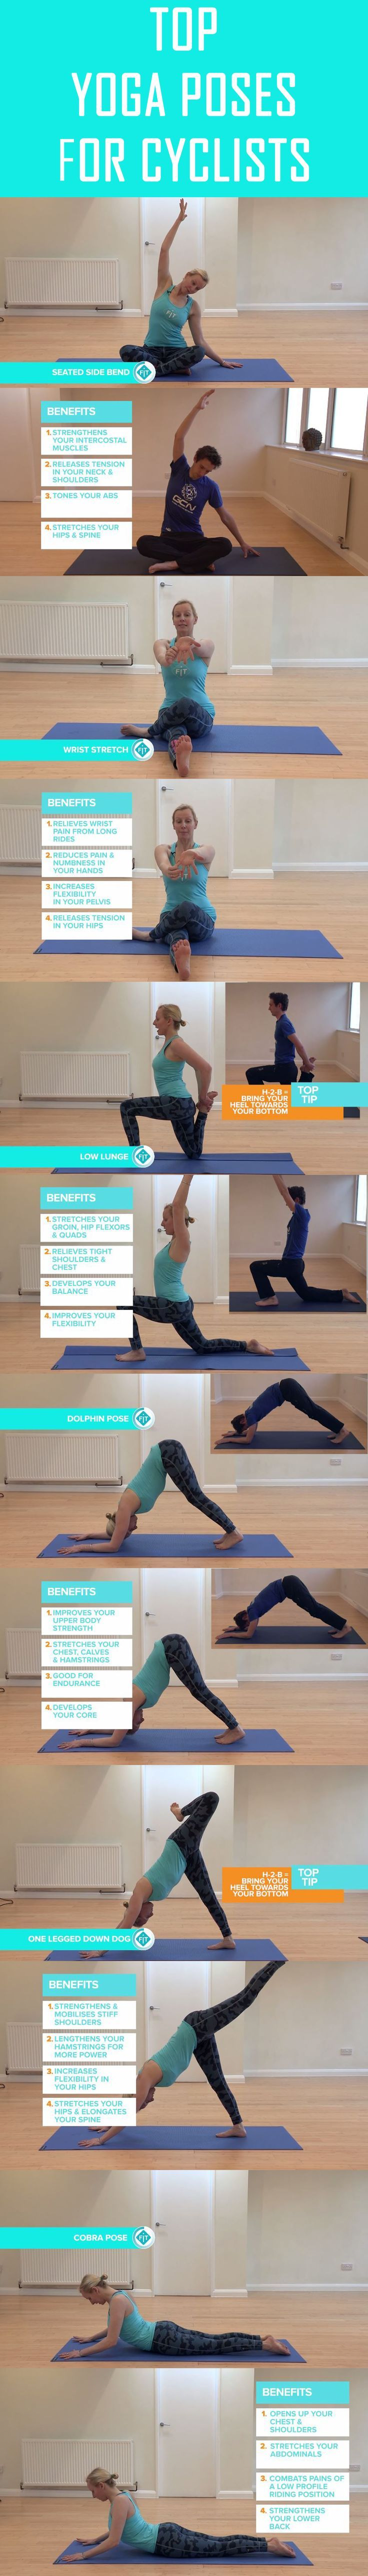 Feel better in and out of the saddle by trying these stretches after each ride!